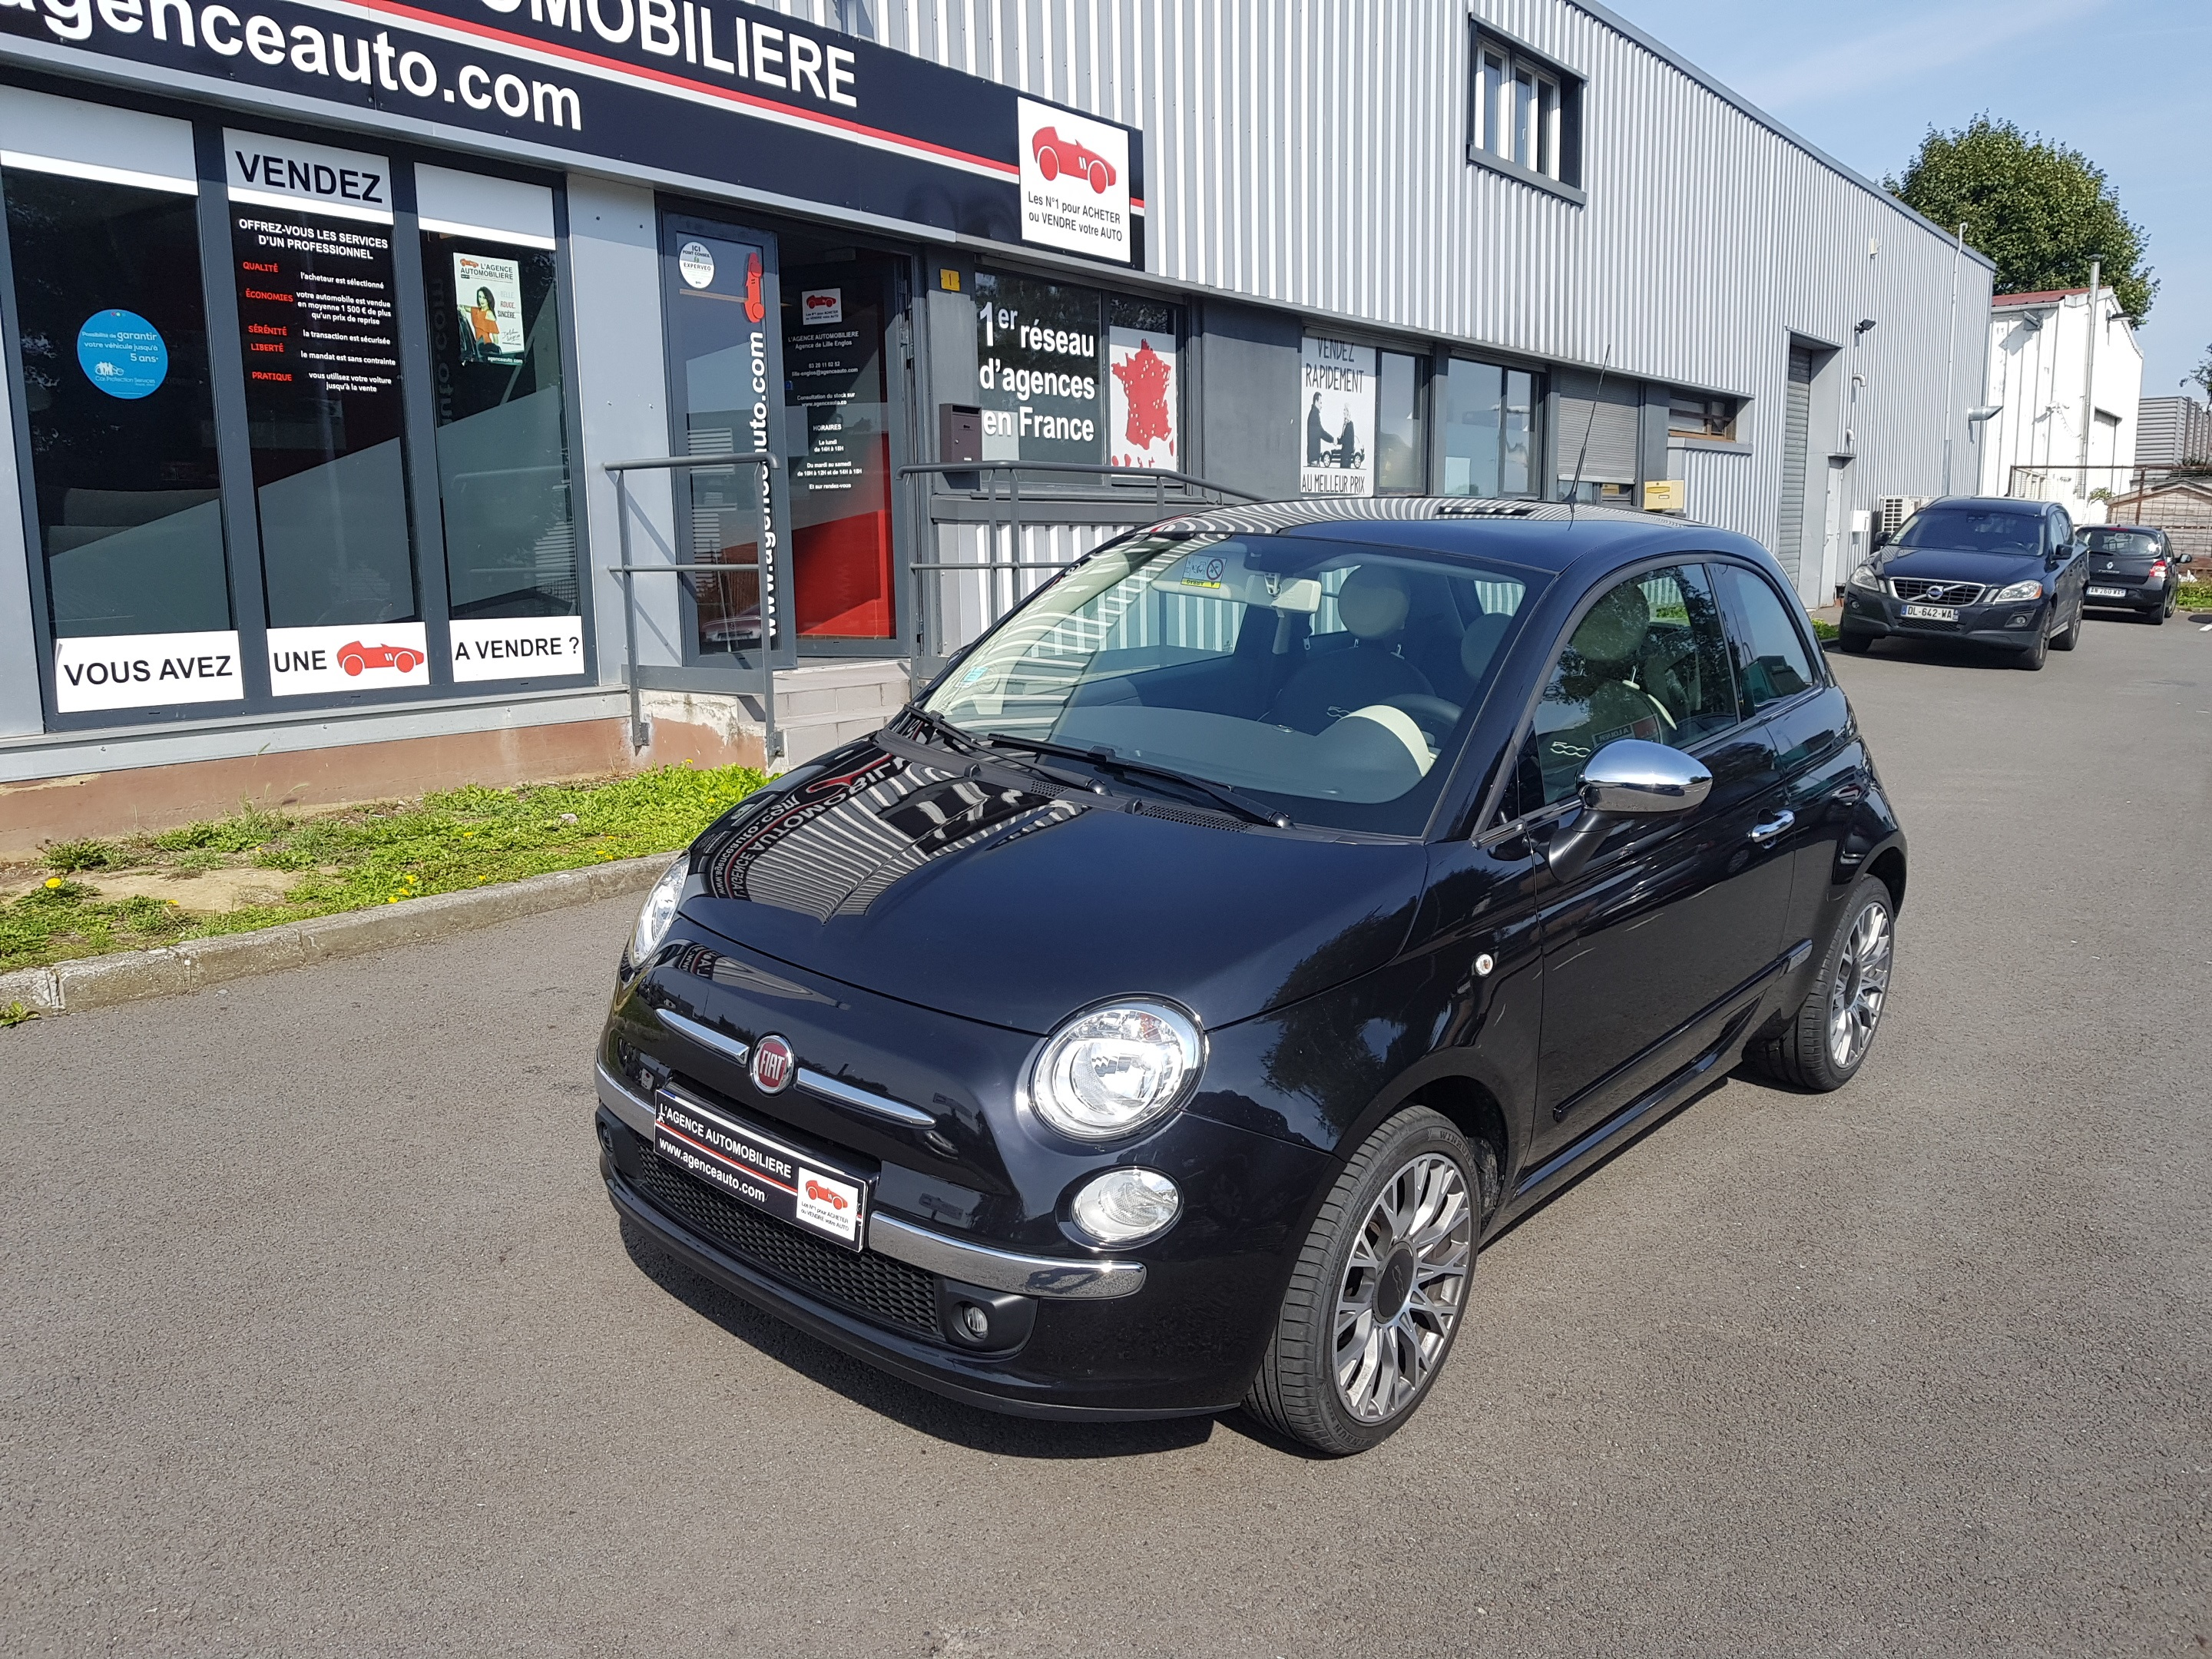 fiat 500 1 2 8v 69ch lounge cuir 1ere main occasion lille englos pas cher voiture occasion nord. Black Bedroom Furniture Sets. Home Design Ideas